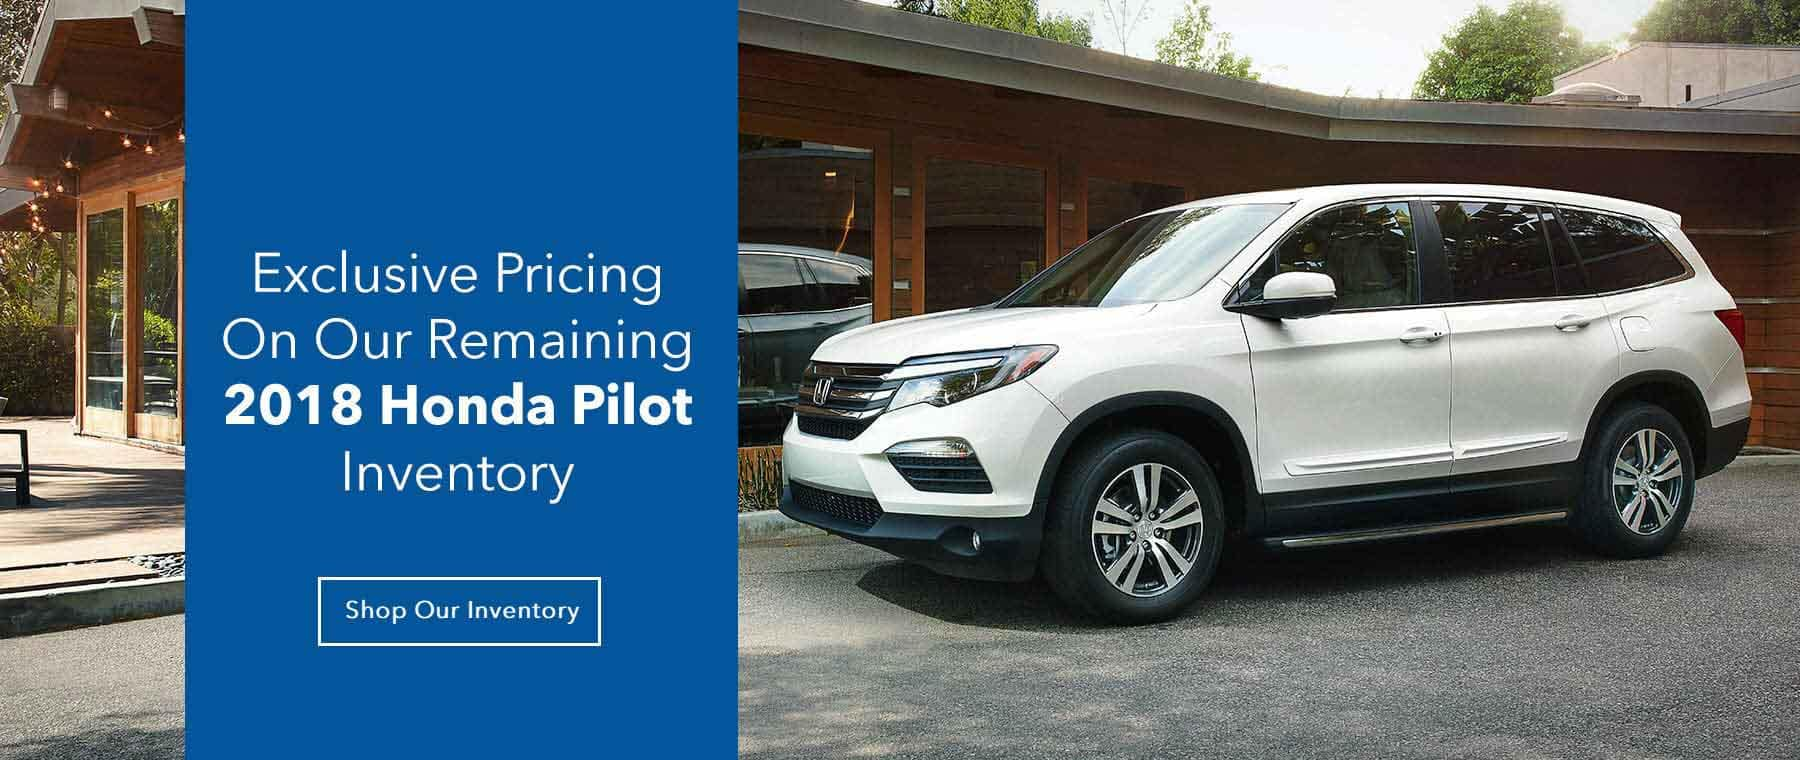 Exclusive Honda Pilot Pricing Slide